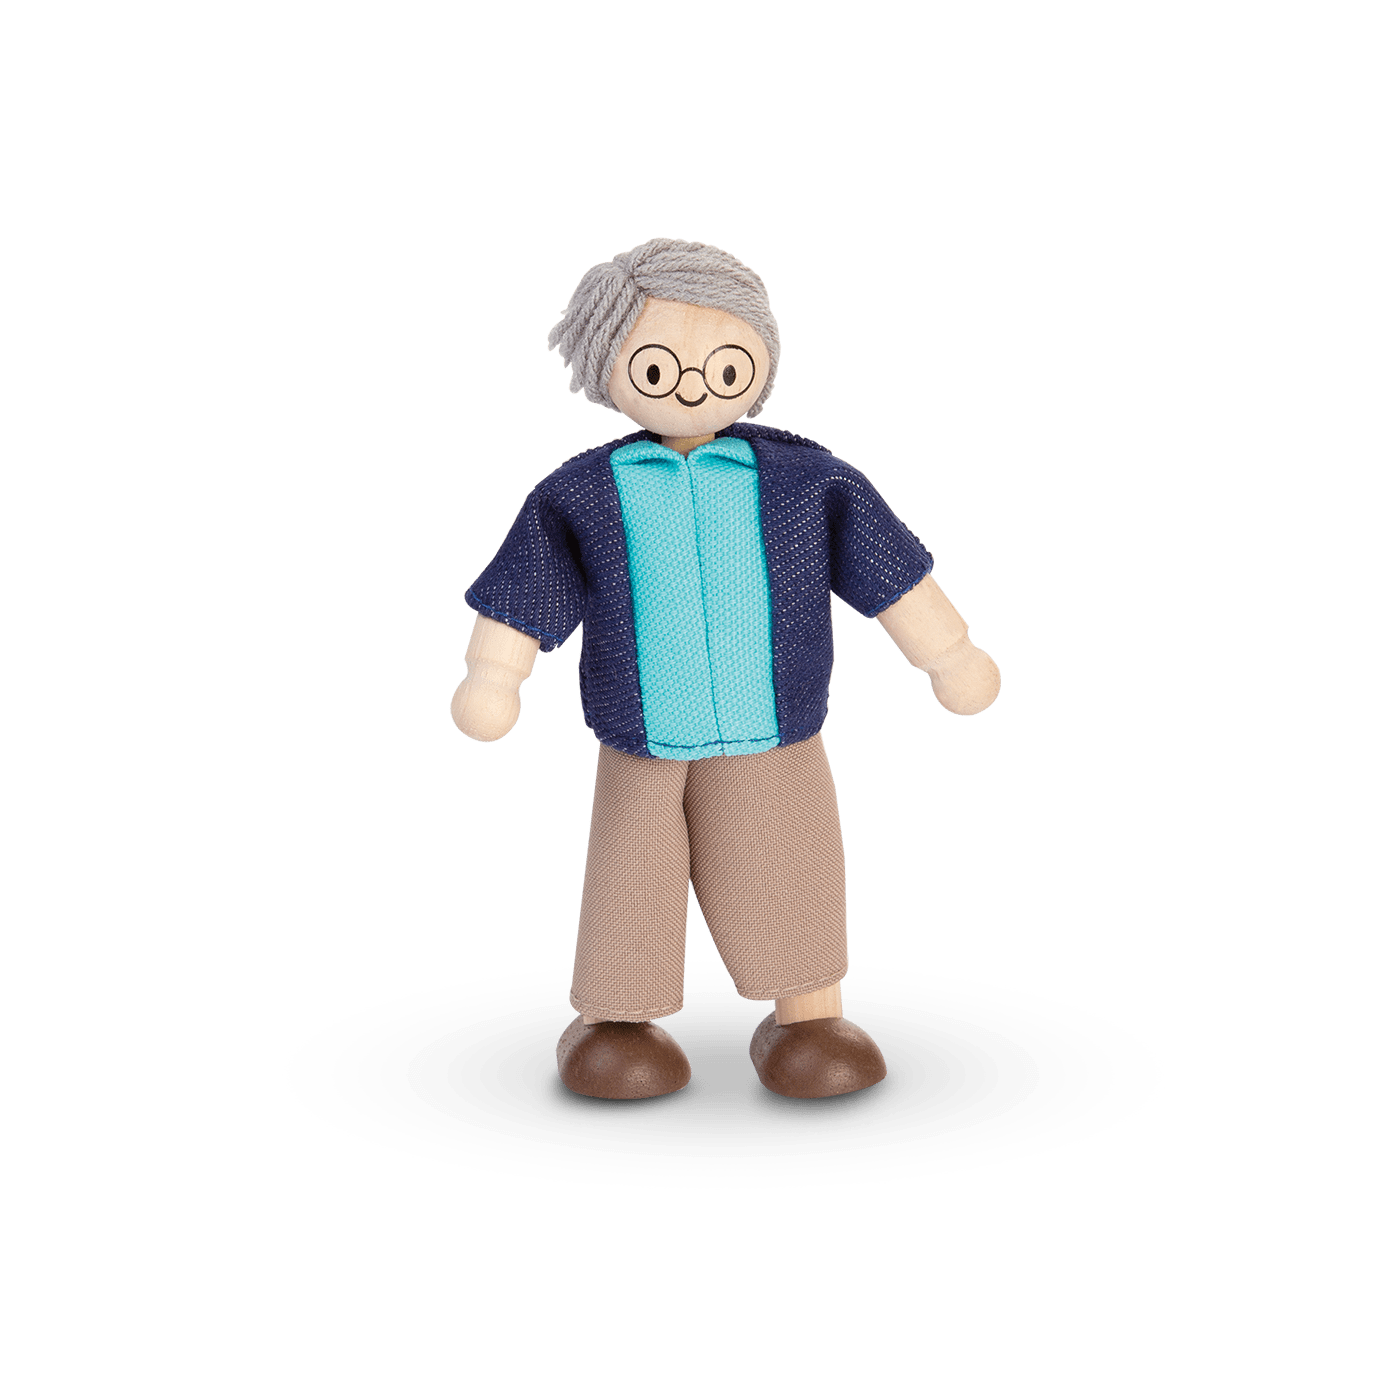 9850_PlanToys_GRANDFATHER_Pretend_Play_Imagination_Social_Language_and_Communications_Coordination_Creative_Emotion_3yrs_Wooden_toys_Education_toys_Safety_Toys_Non-toxic_0.png